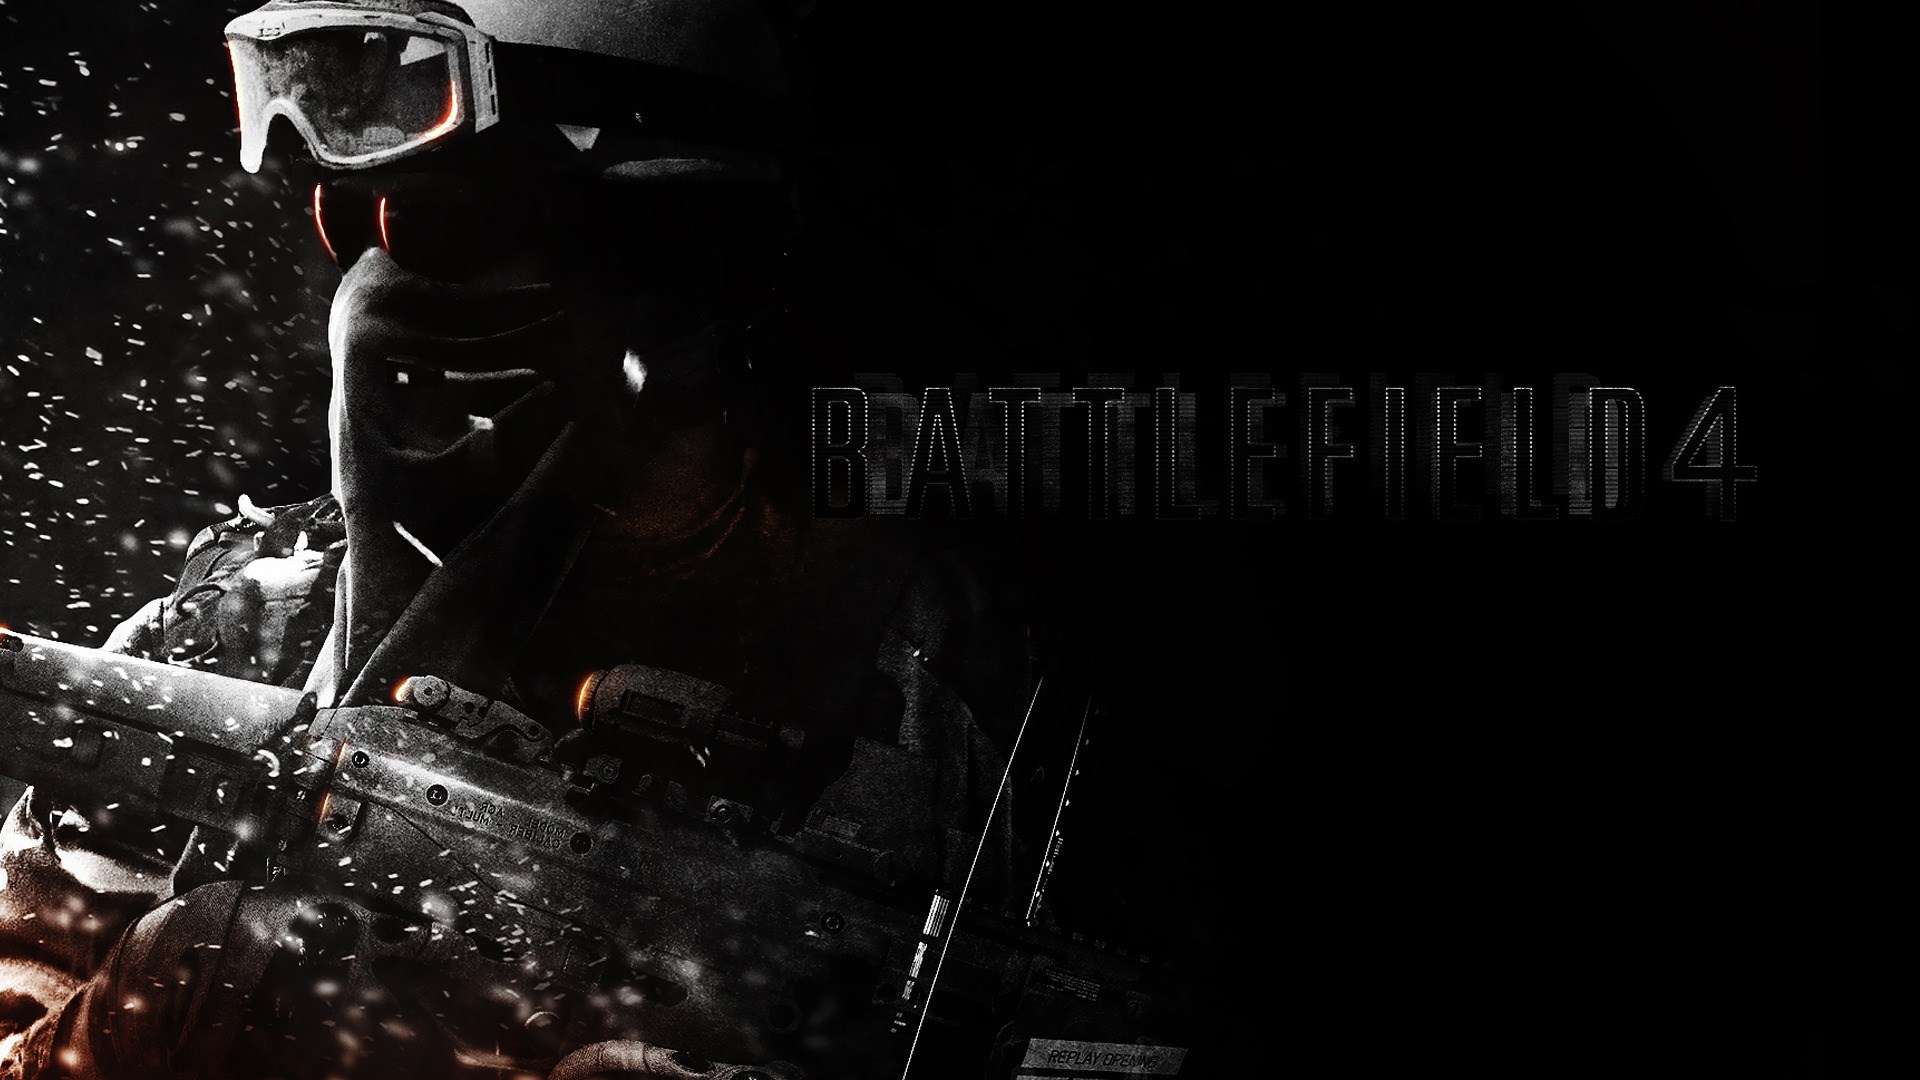 battlefield 4 wallpaper 1080p